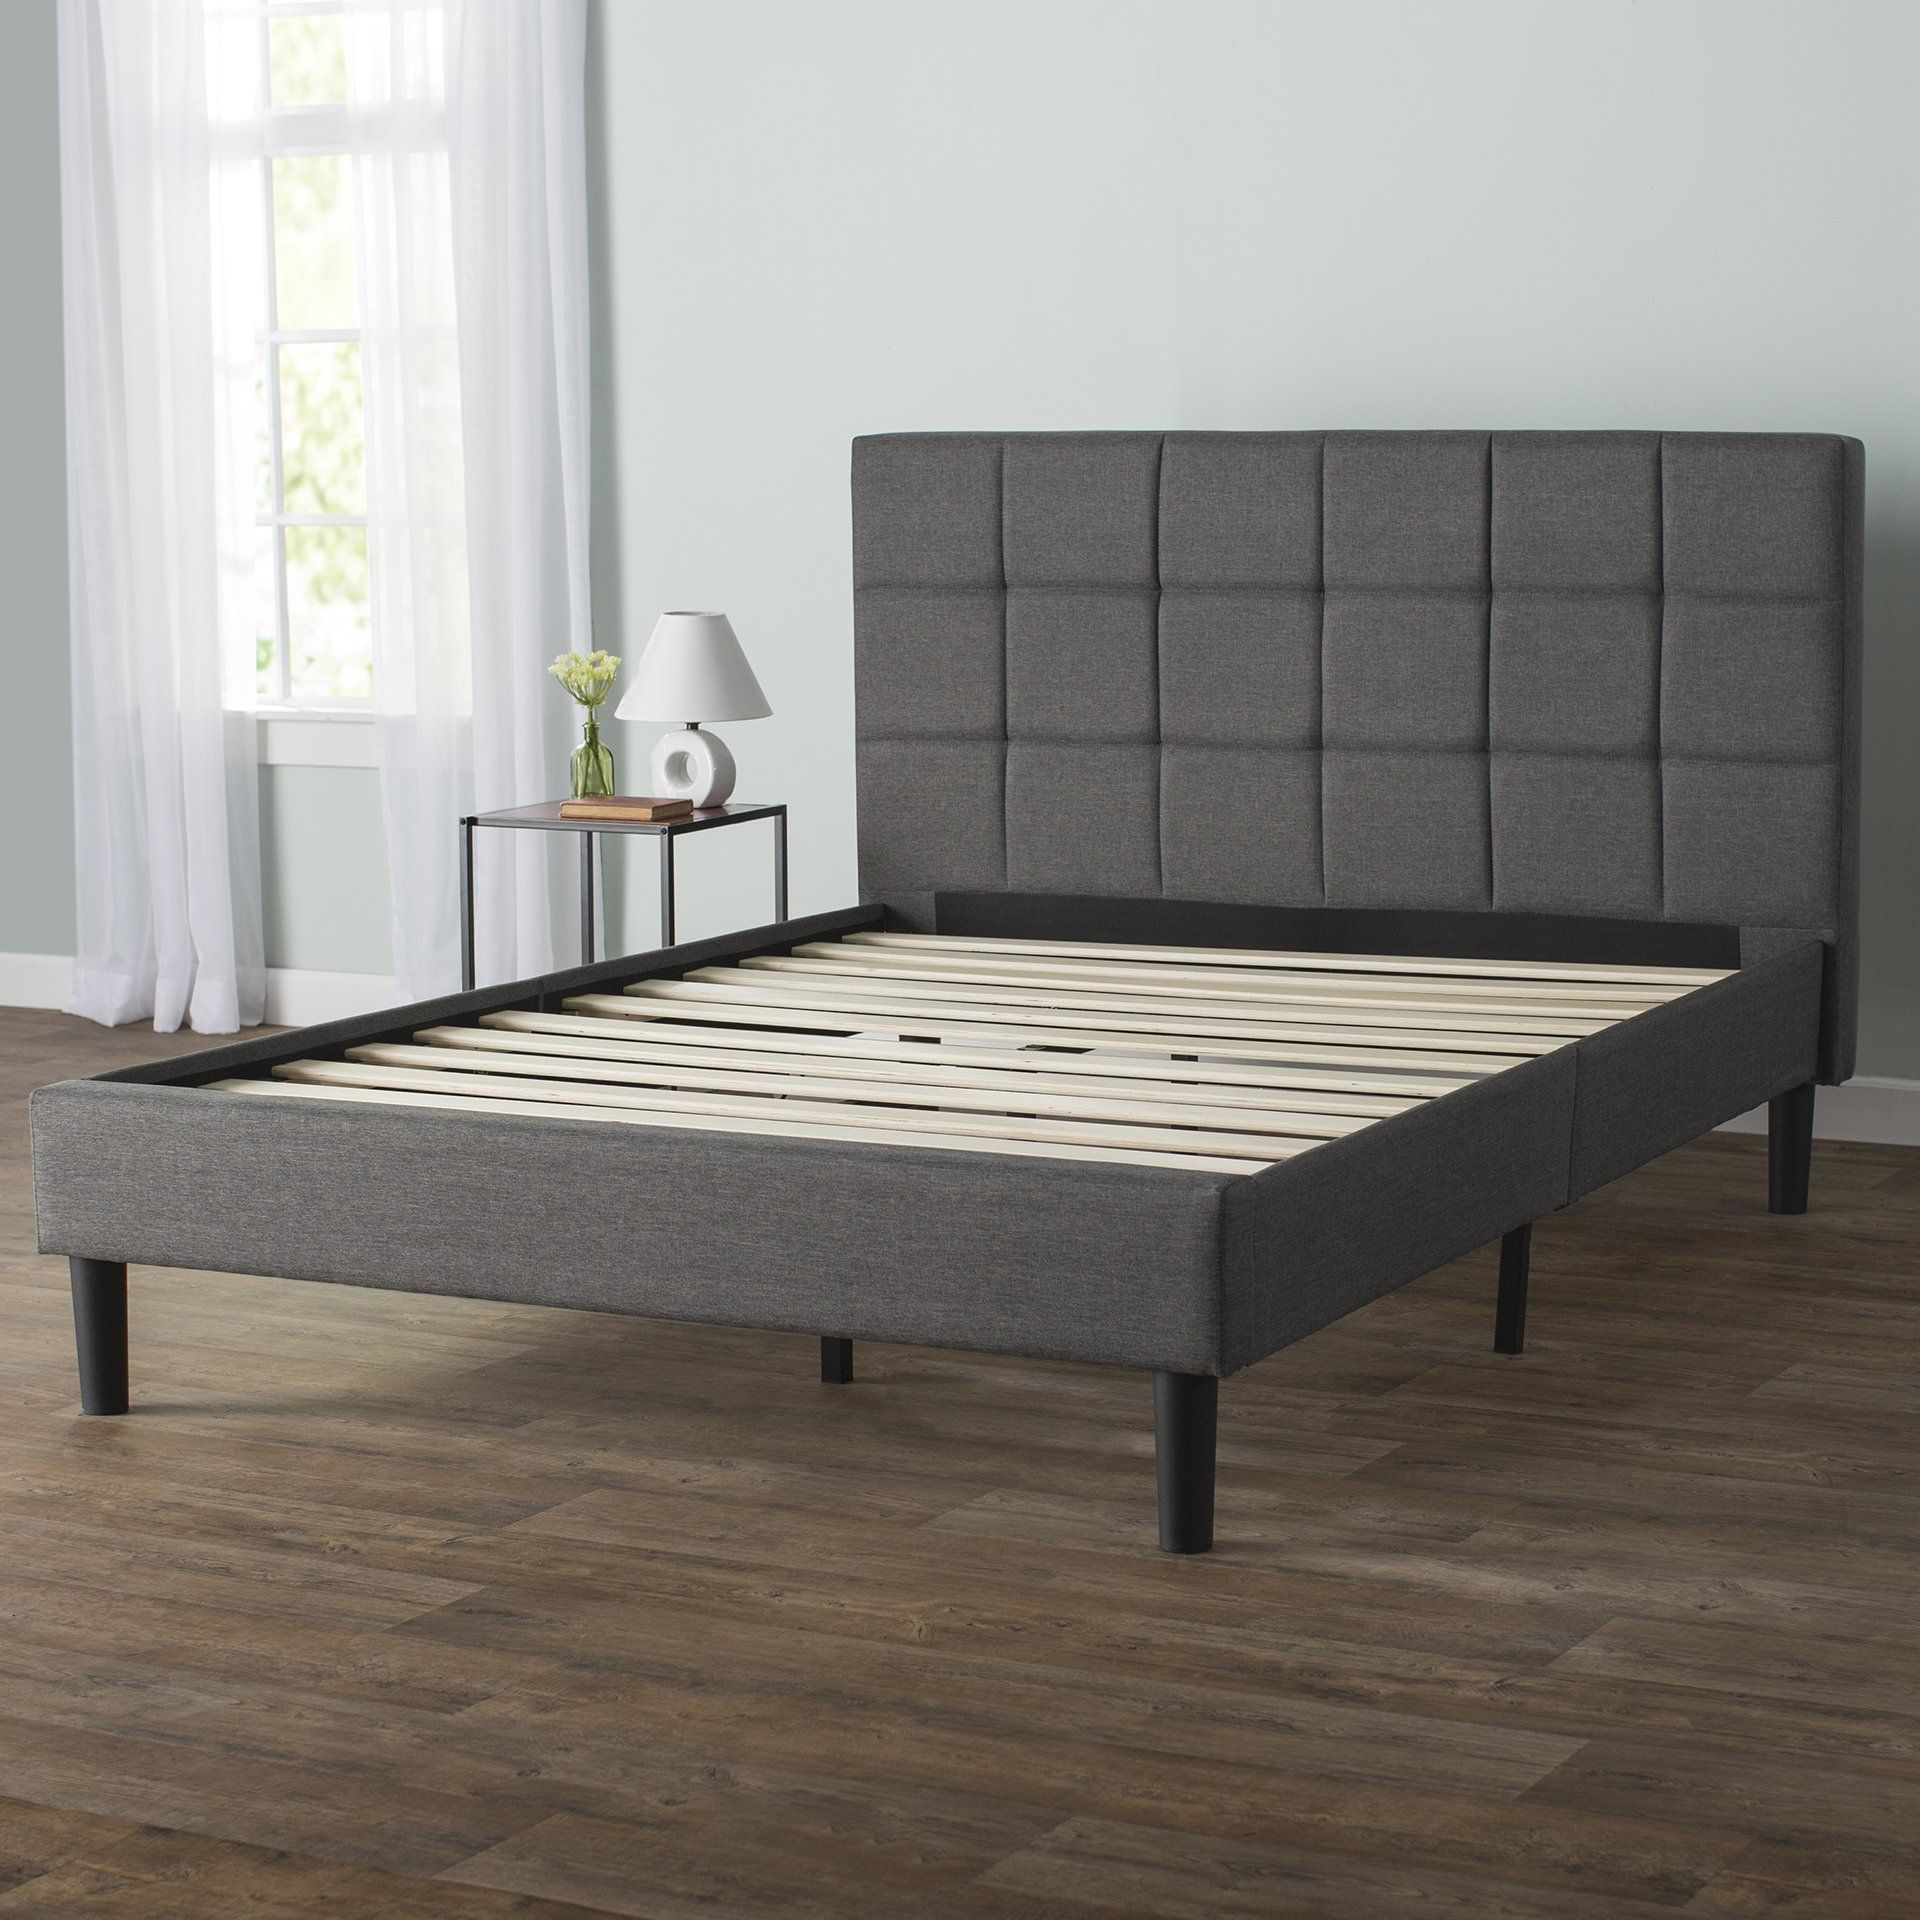 Colby Upholstered Platform Bed Upholstered panel bed